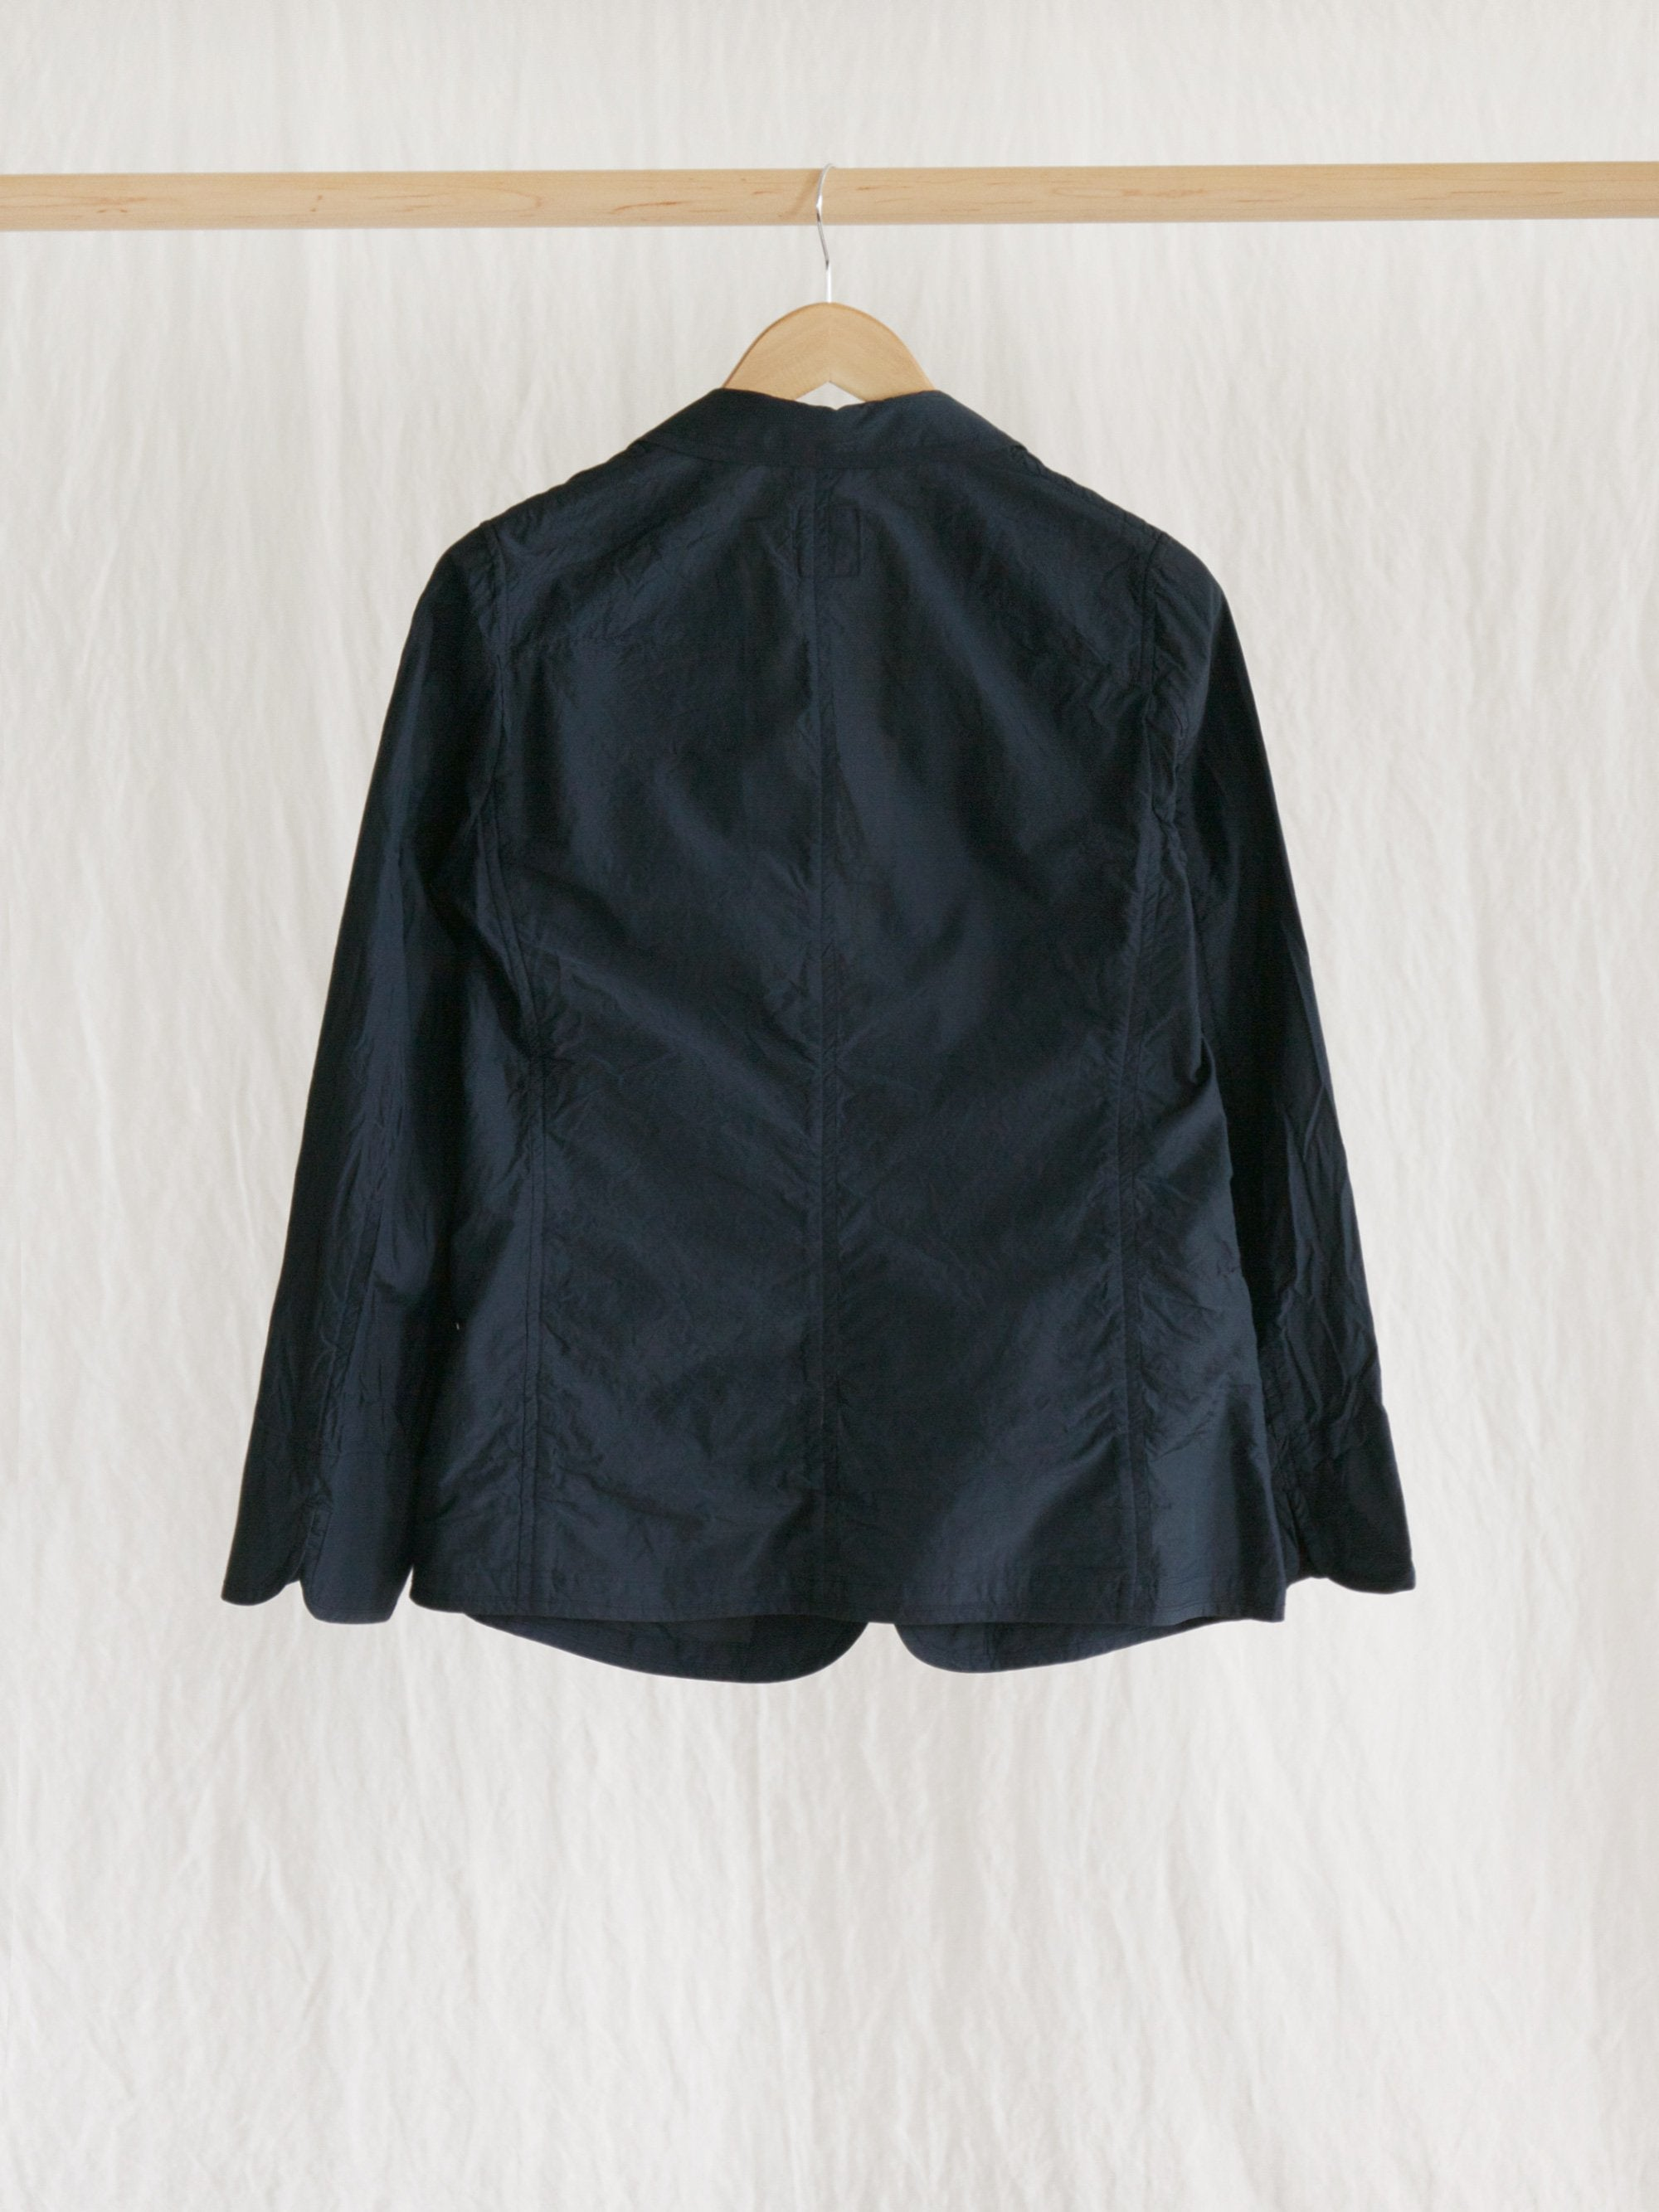 Namu Shop - ts(s) Cotton Silk Piping Jacket